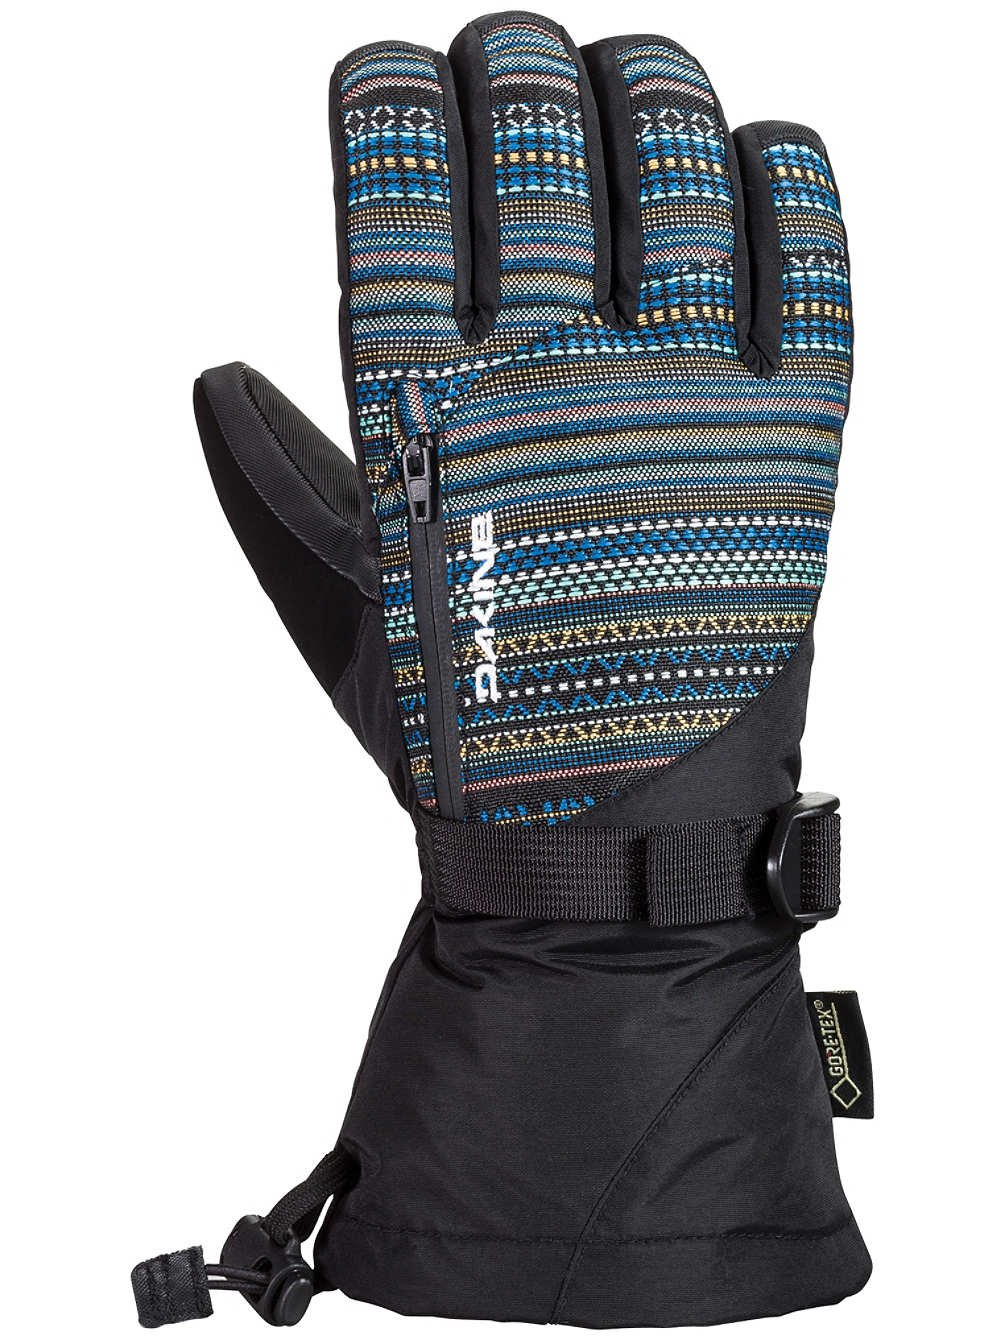 Dakine Women's Sequoia Insulated Gloves, Cortez S by Dakine (Image #1)